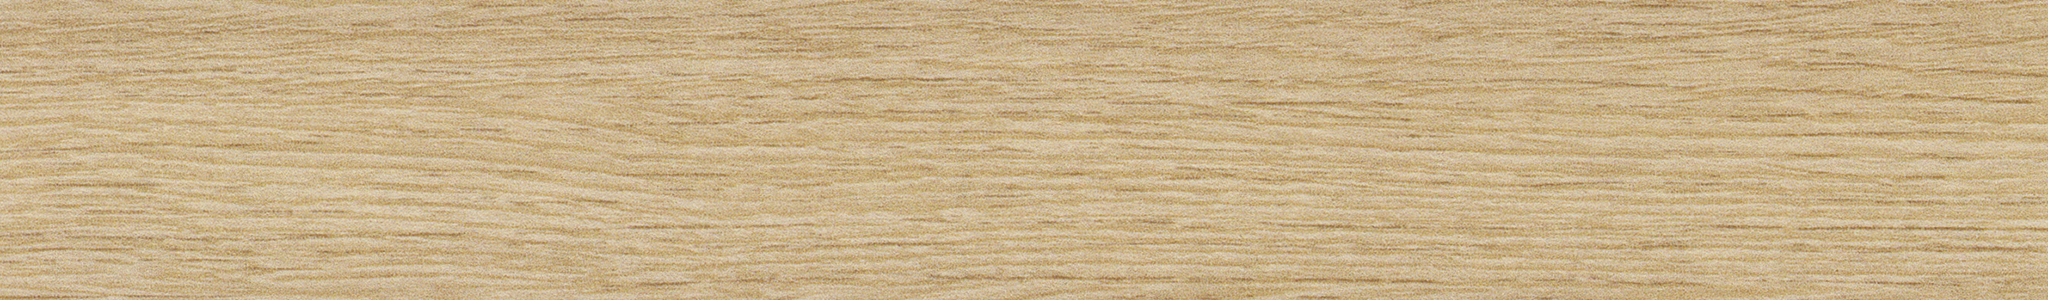 HD 643303 Melamine Edge FALZ Natural Oak Smooth